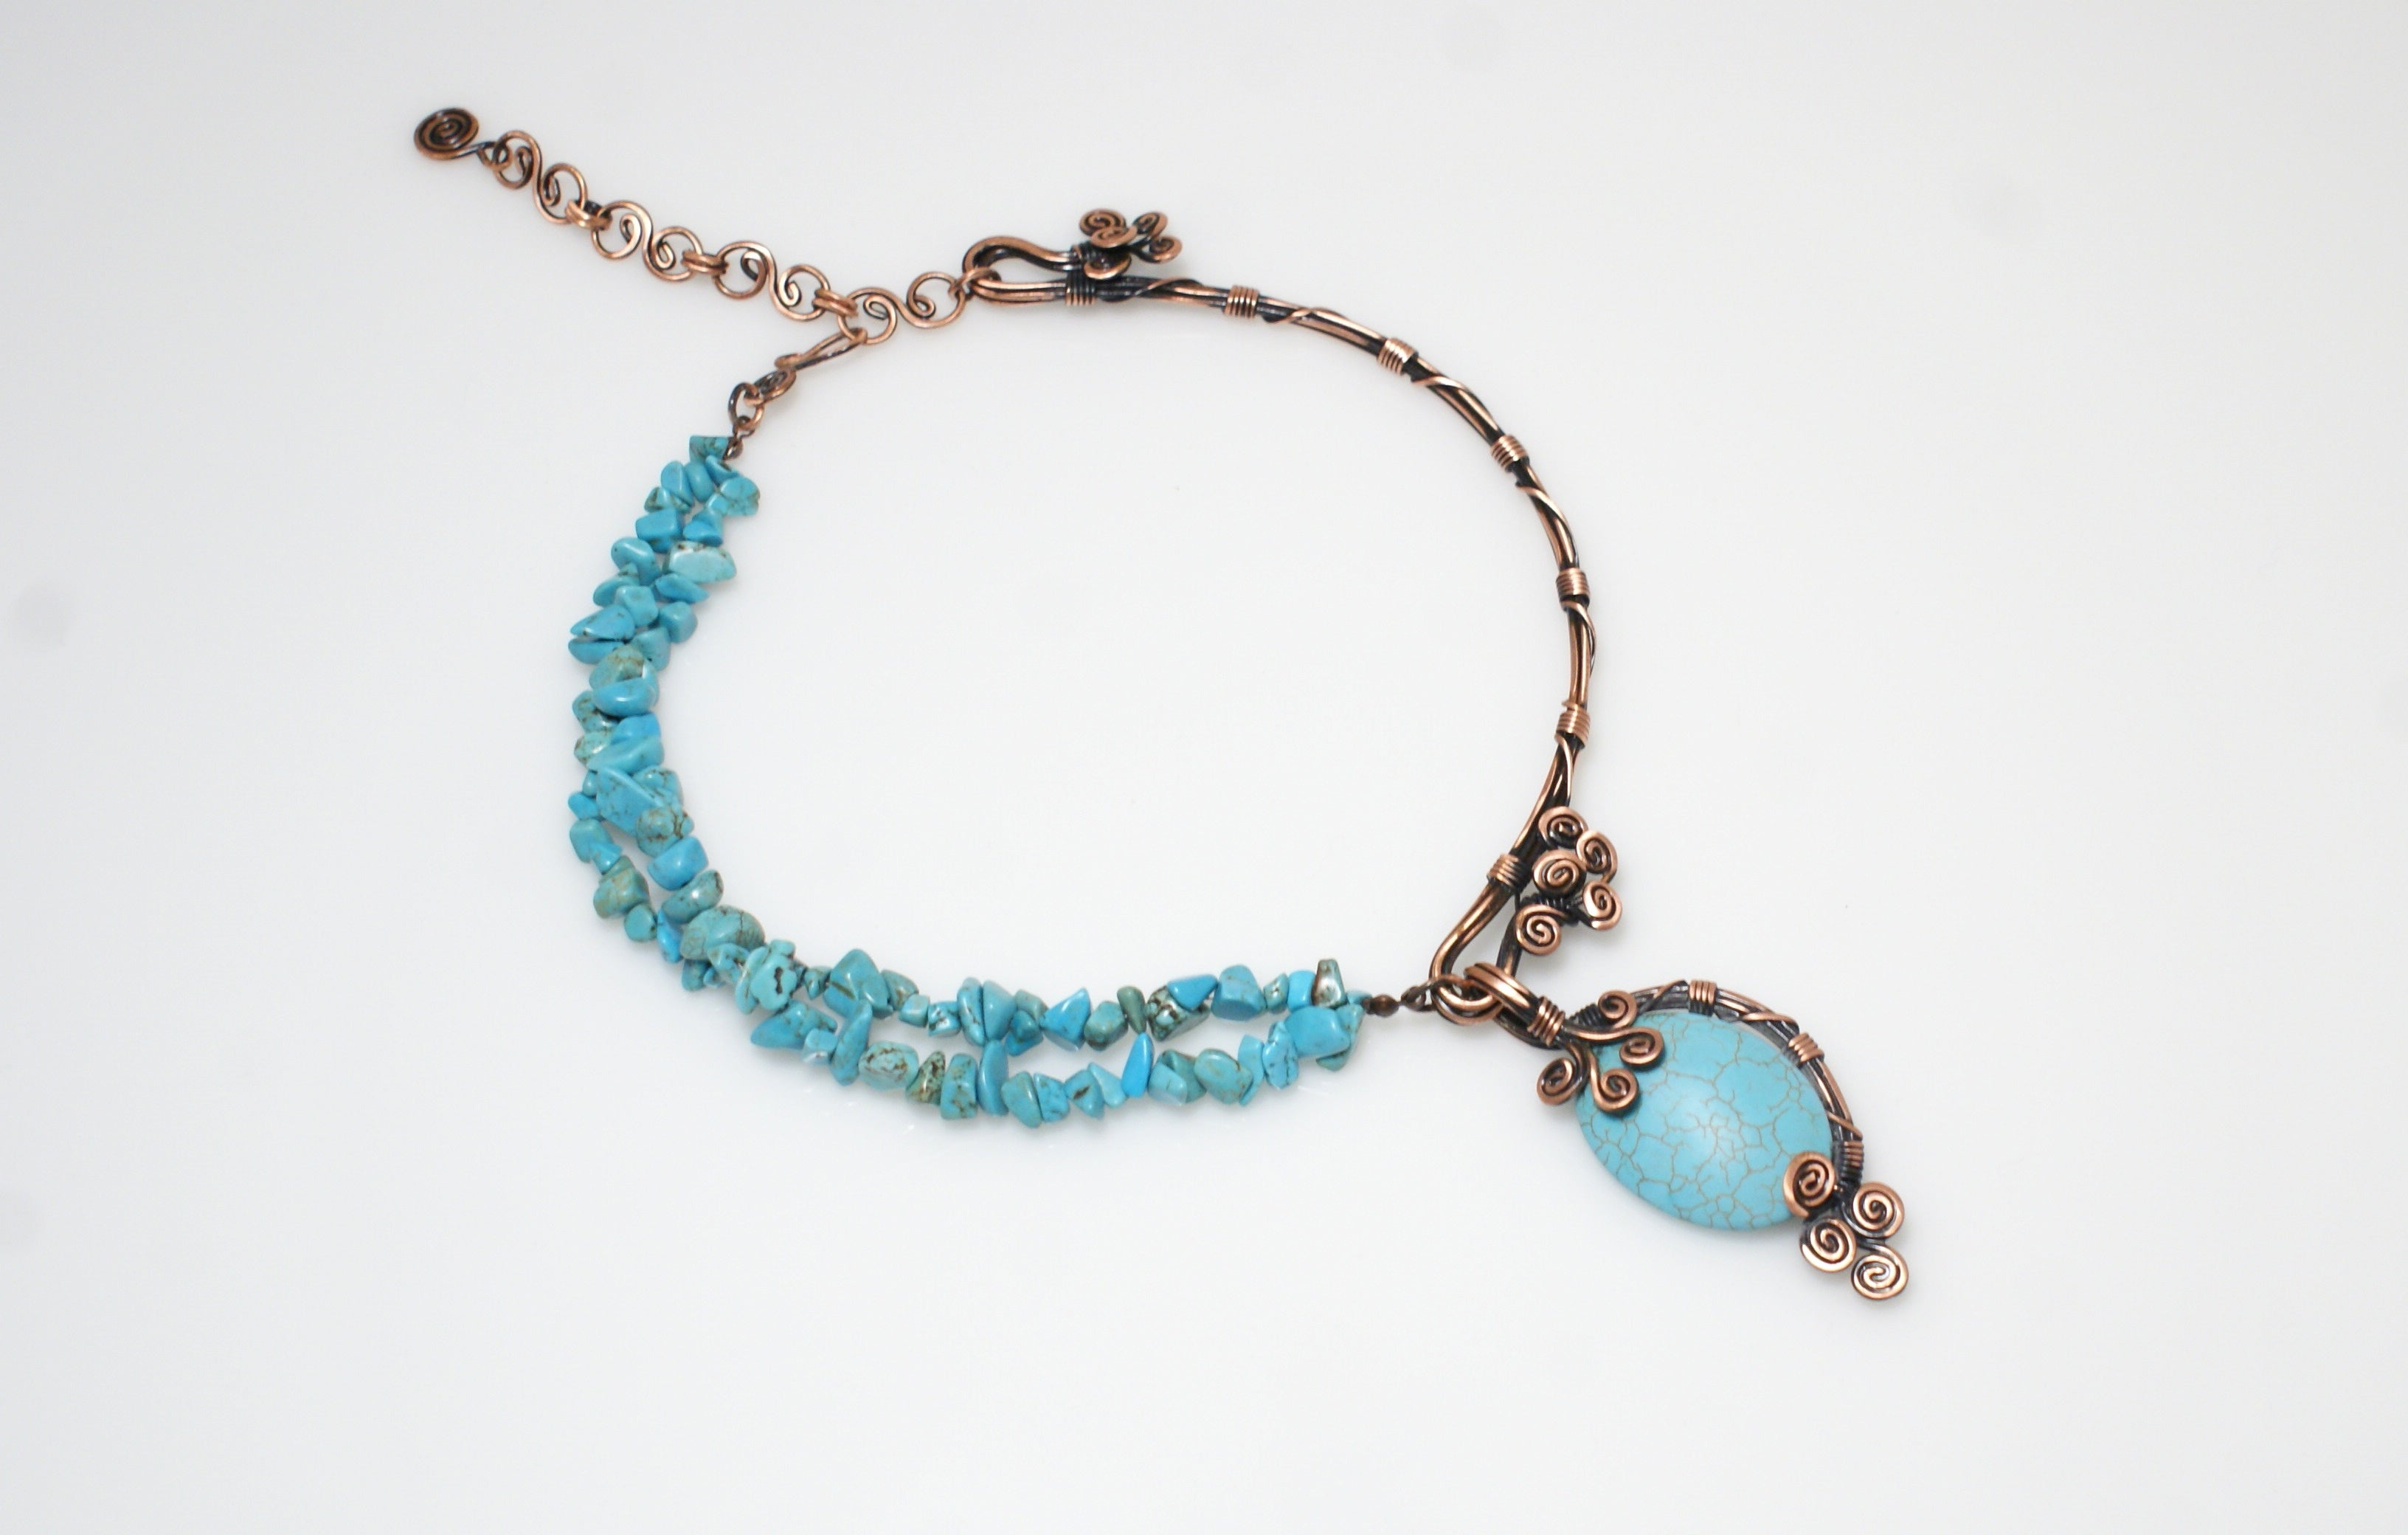 Handmade Turquoise Wire Wrapped Necklace - Babazen